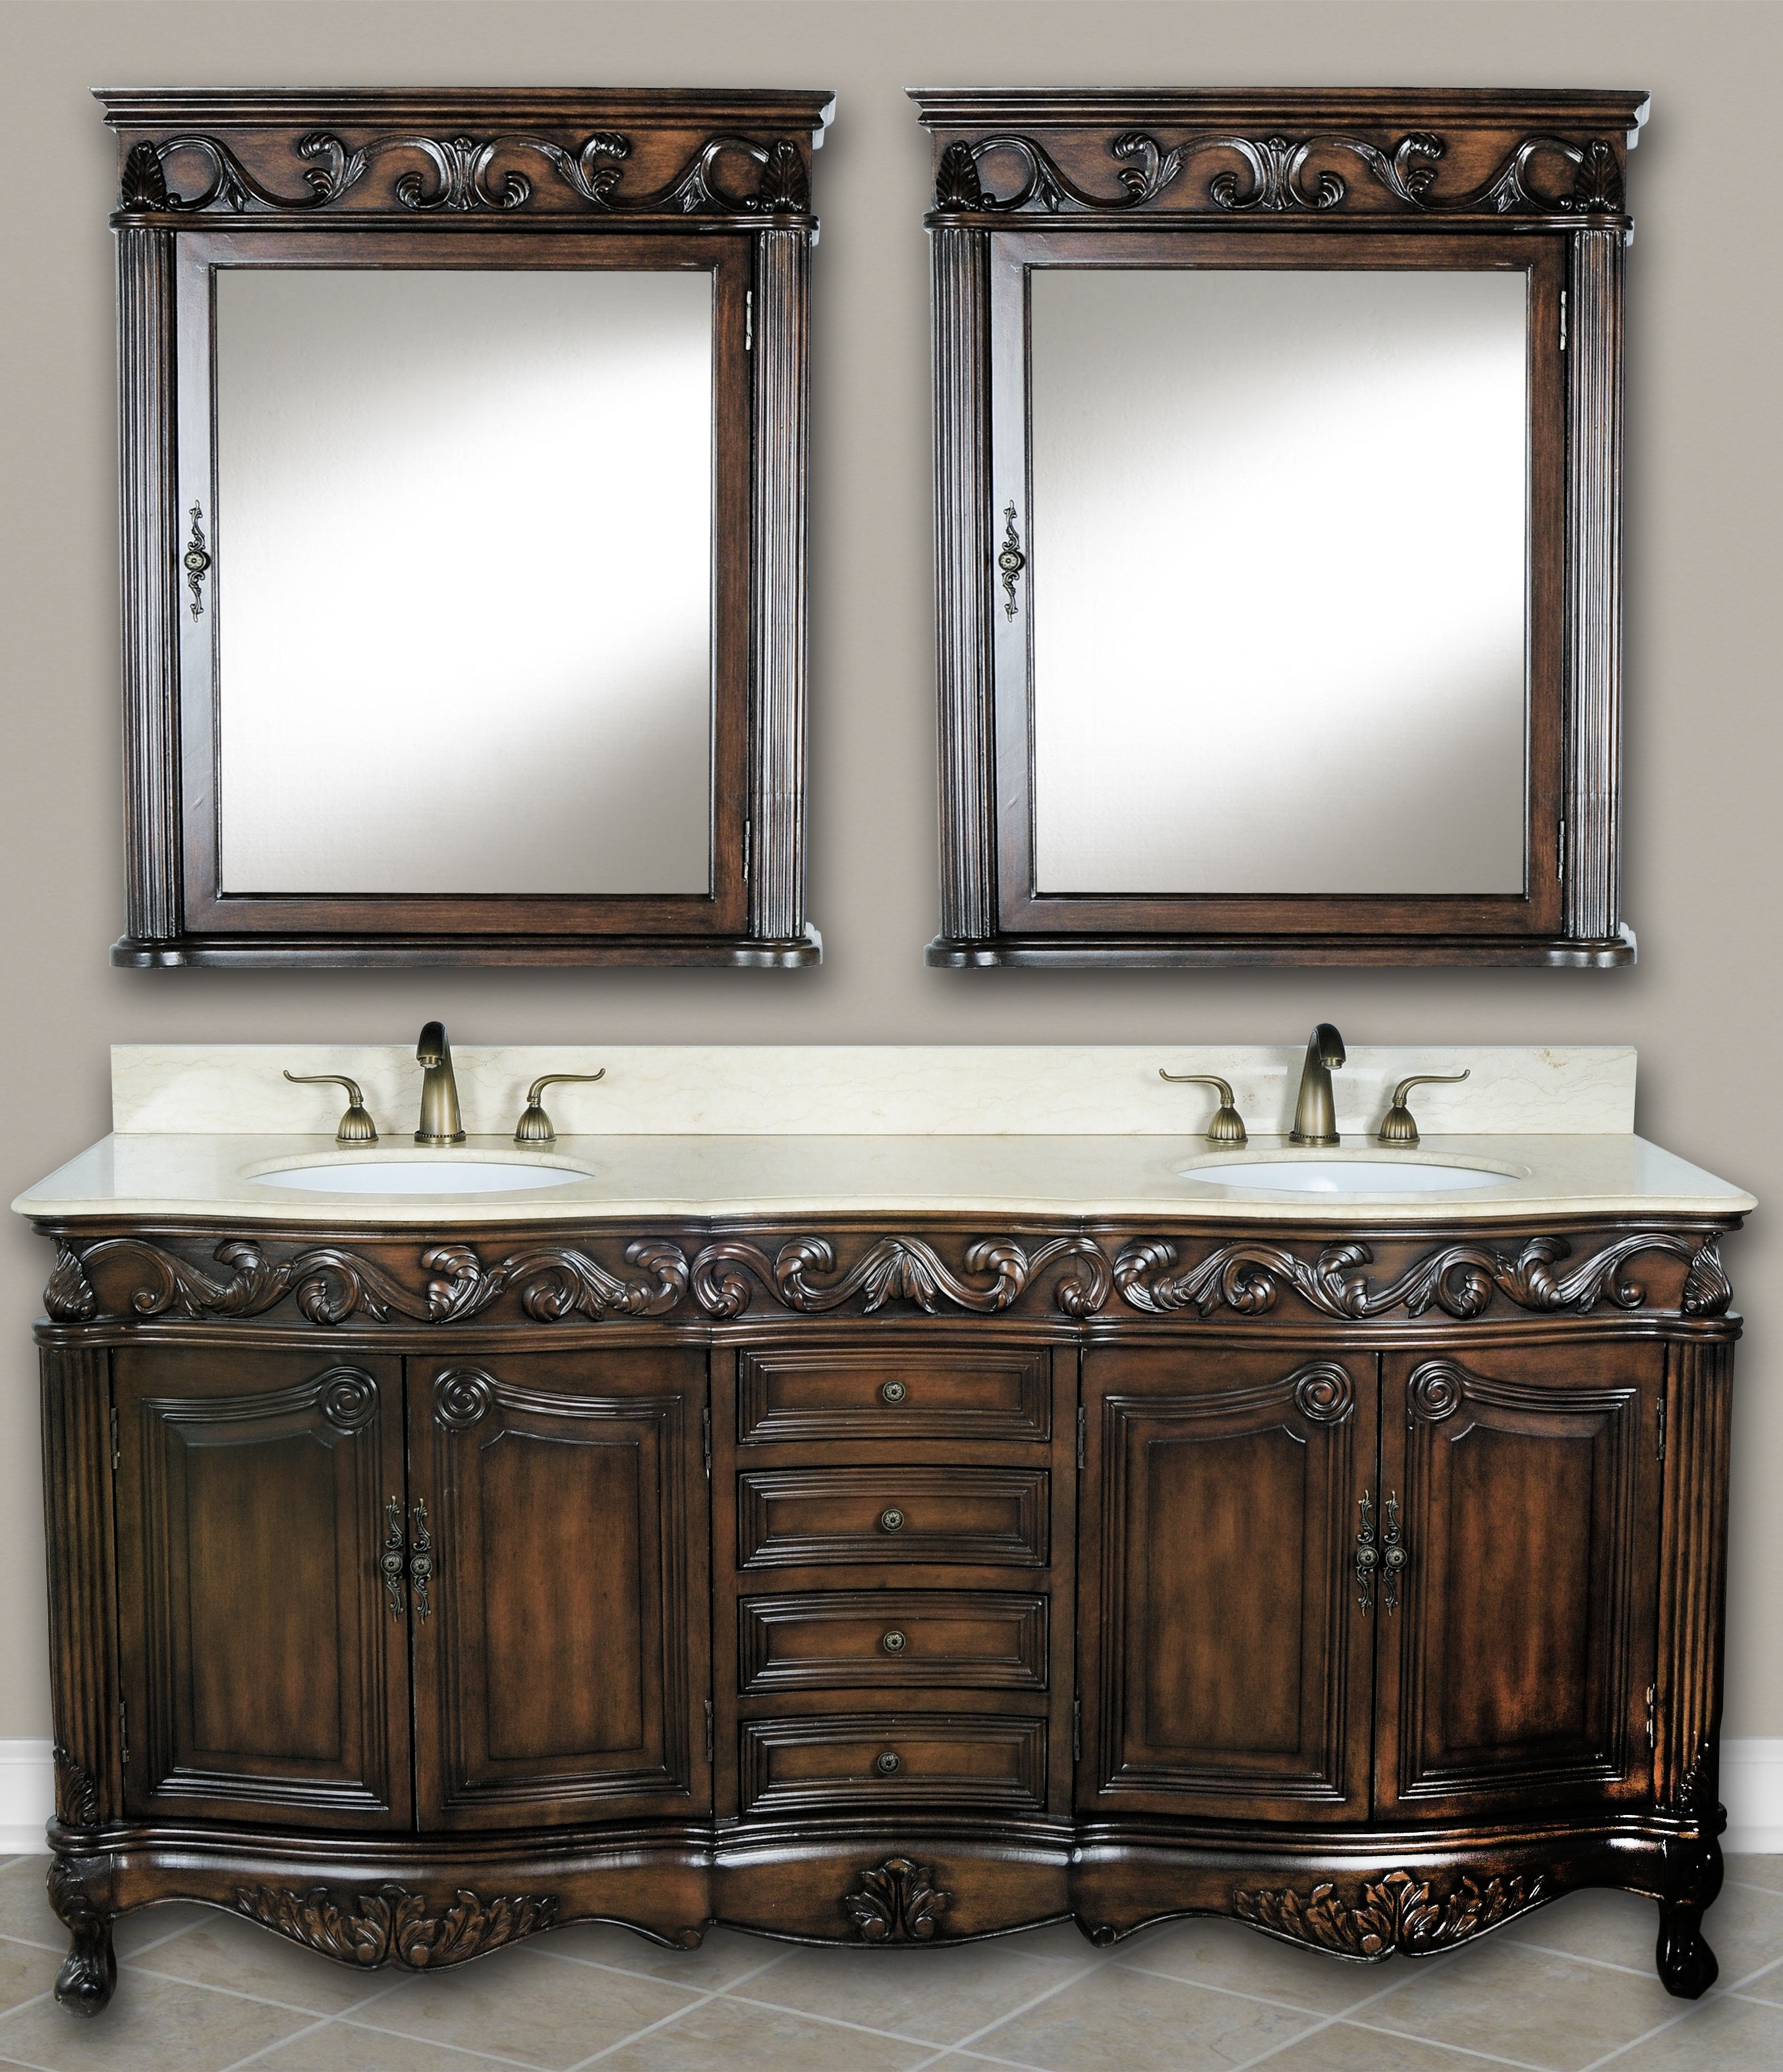 73 Inch Mayfield Vanity Double Sink Vanity Antique White Vanity